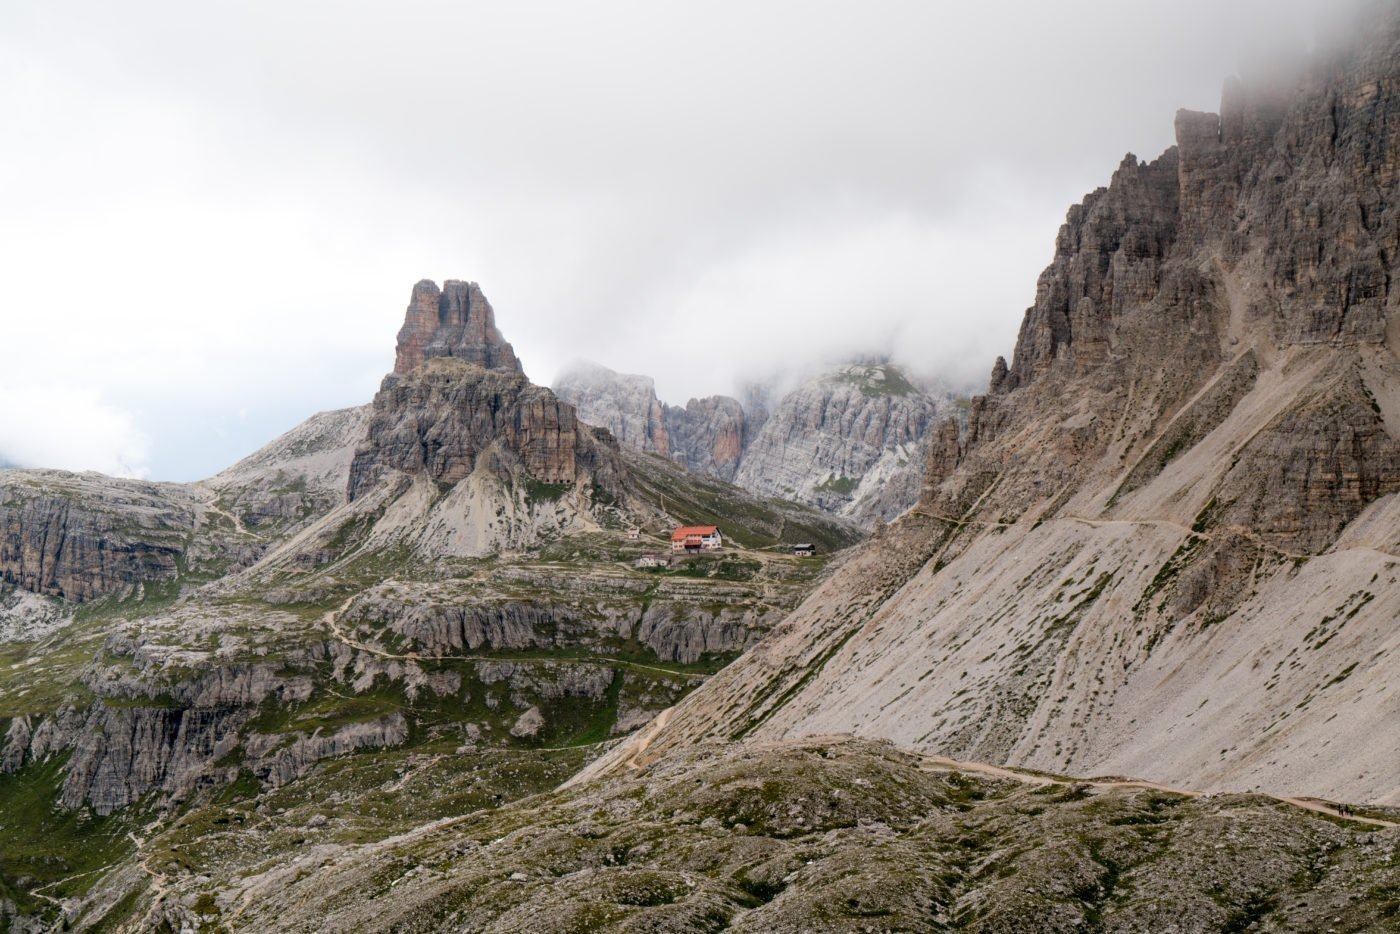 On the way to the hut at Tre Cime